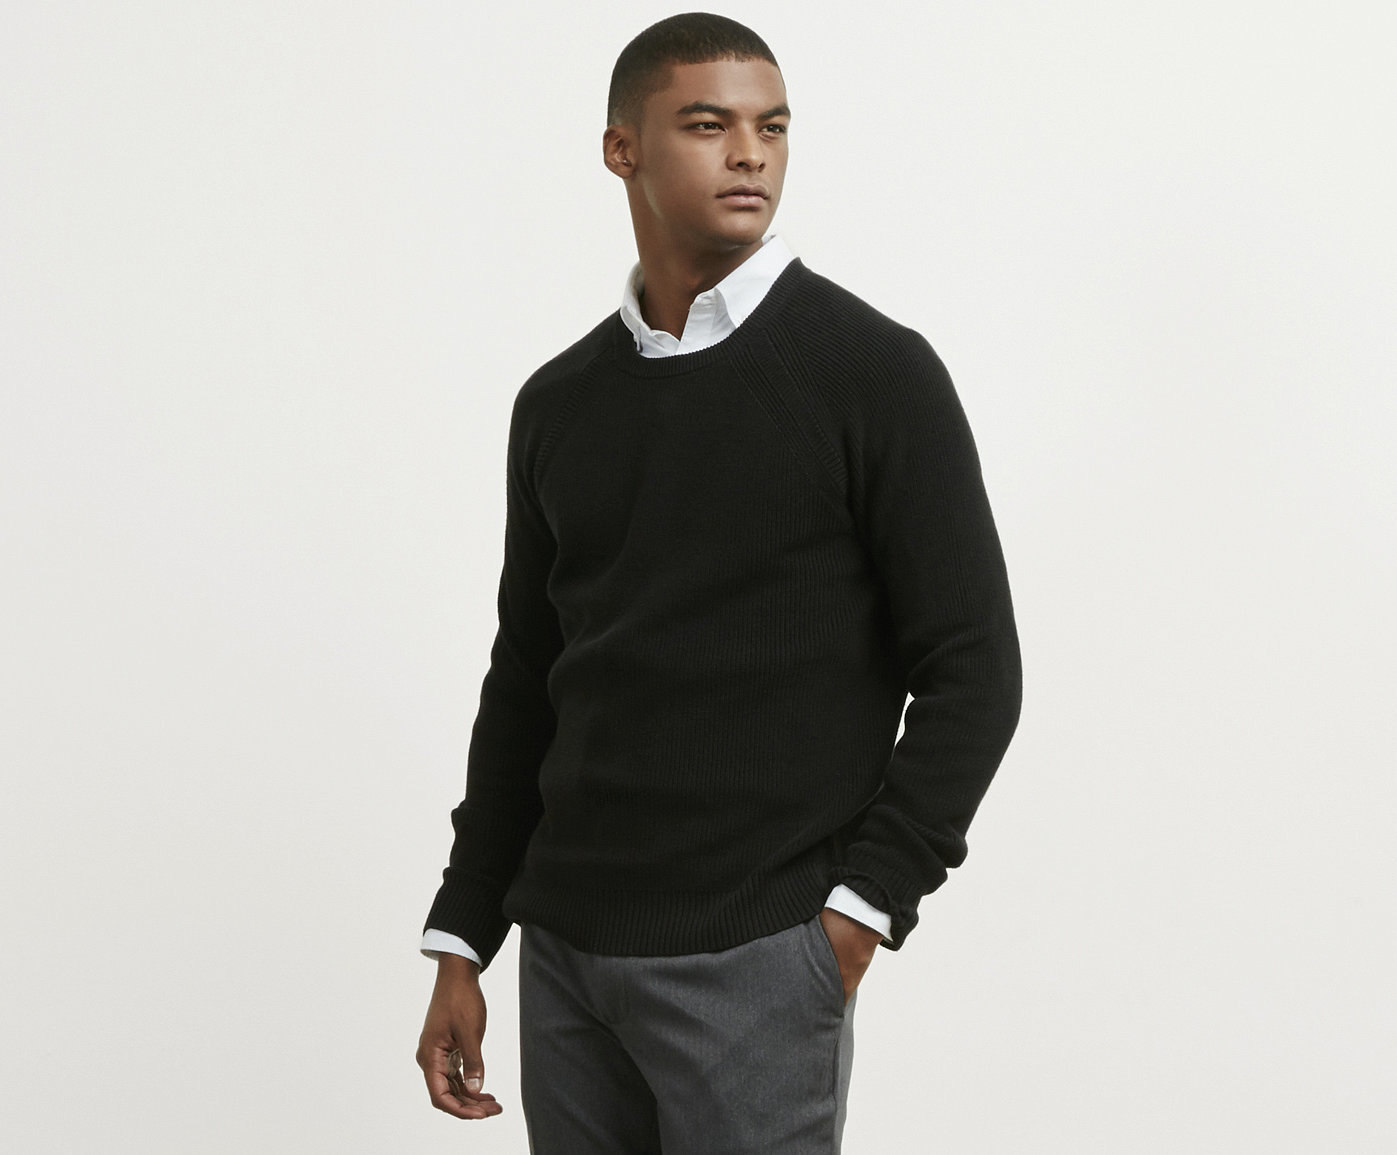 what to wear men s interview outfit ideas kenneth cole black crew neck sweater mens interview style